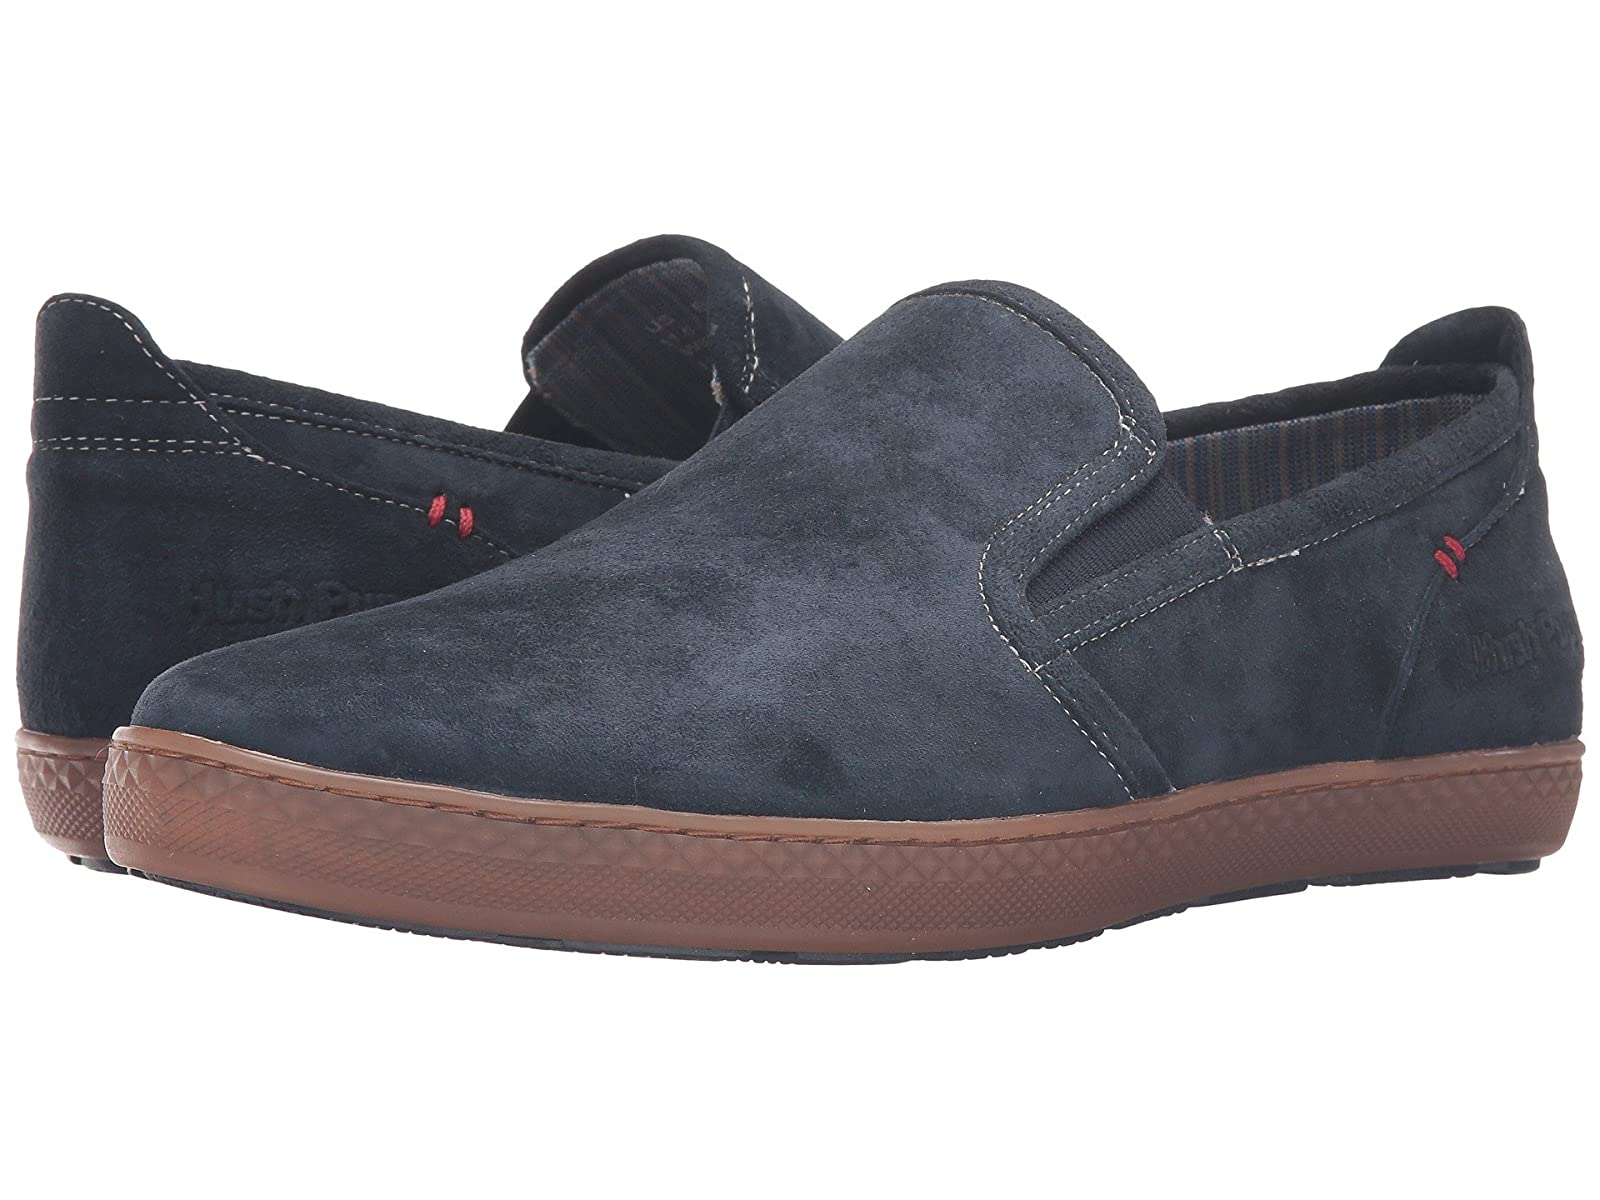 Hush Puppies Goal RoadcrewCheap and distinctive eye-catching shoes